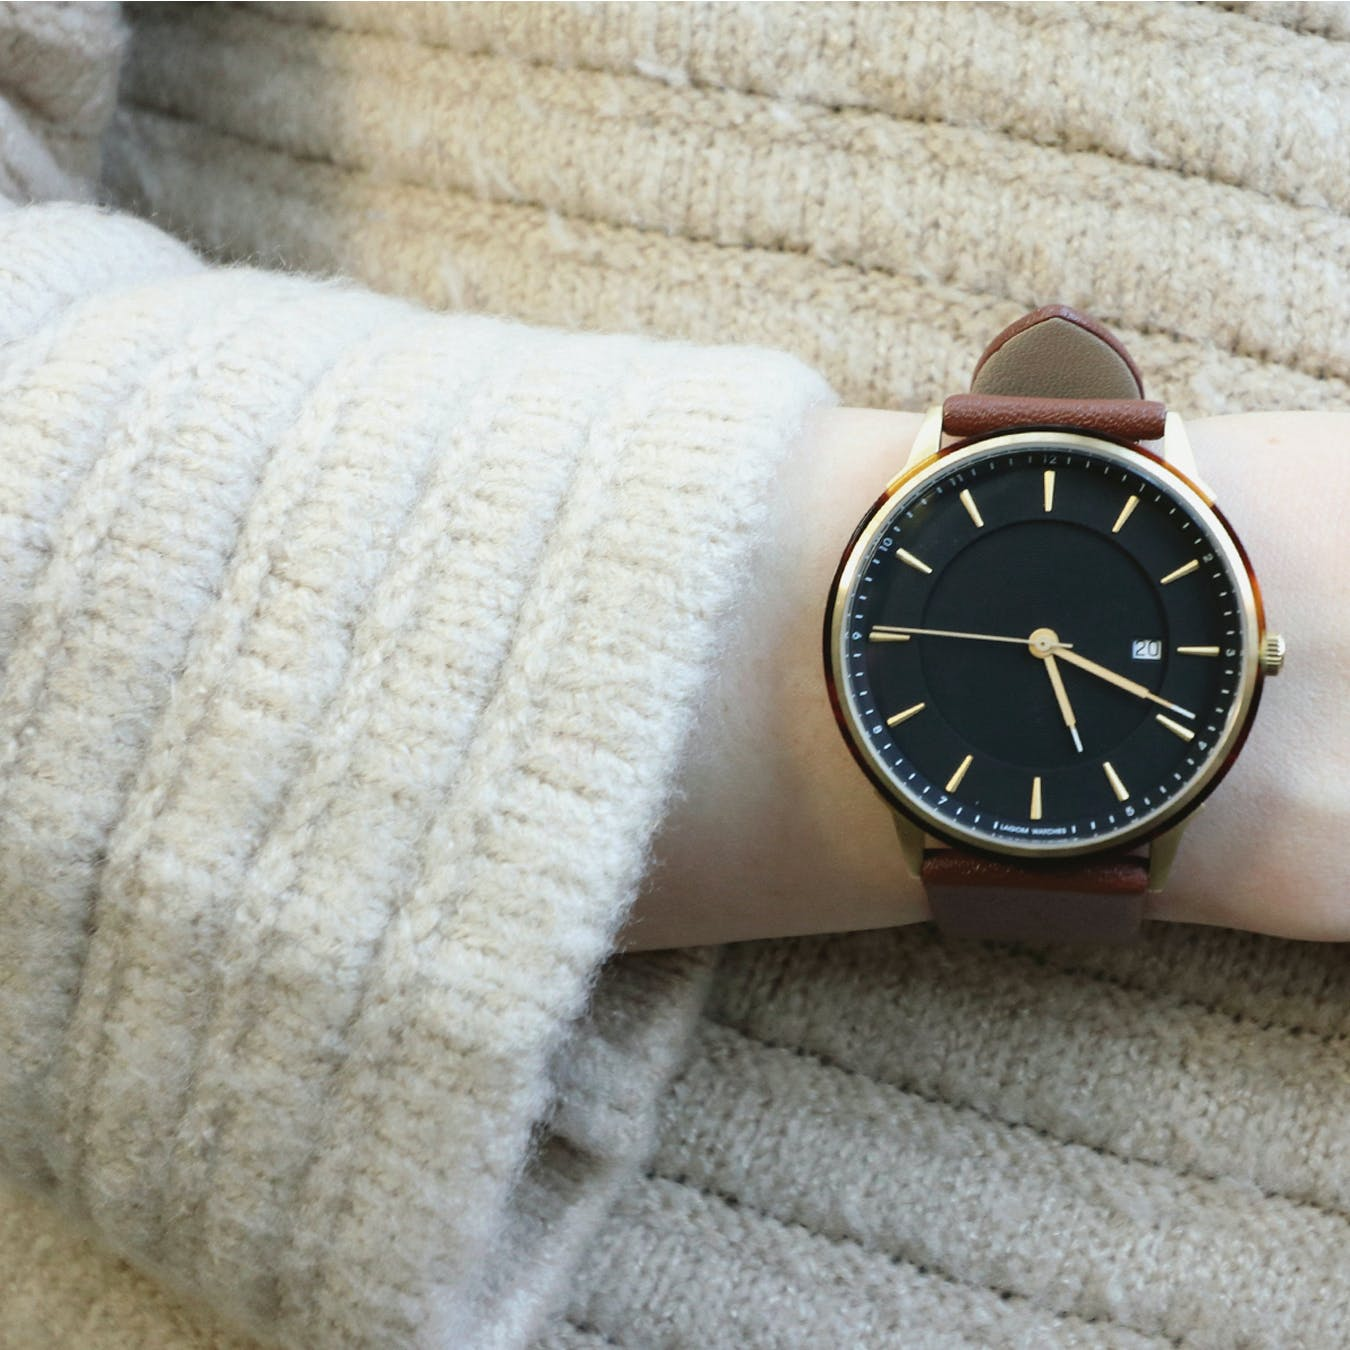 BÖRJA - Gold Watch in Black Face and Brown Leather Strap